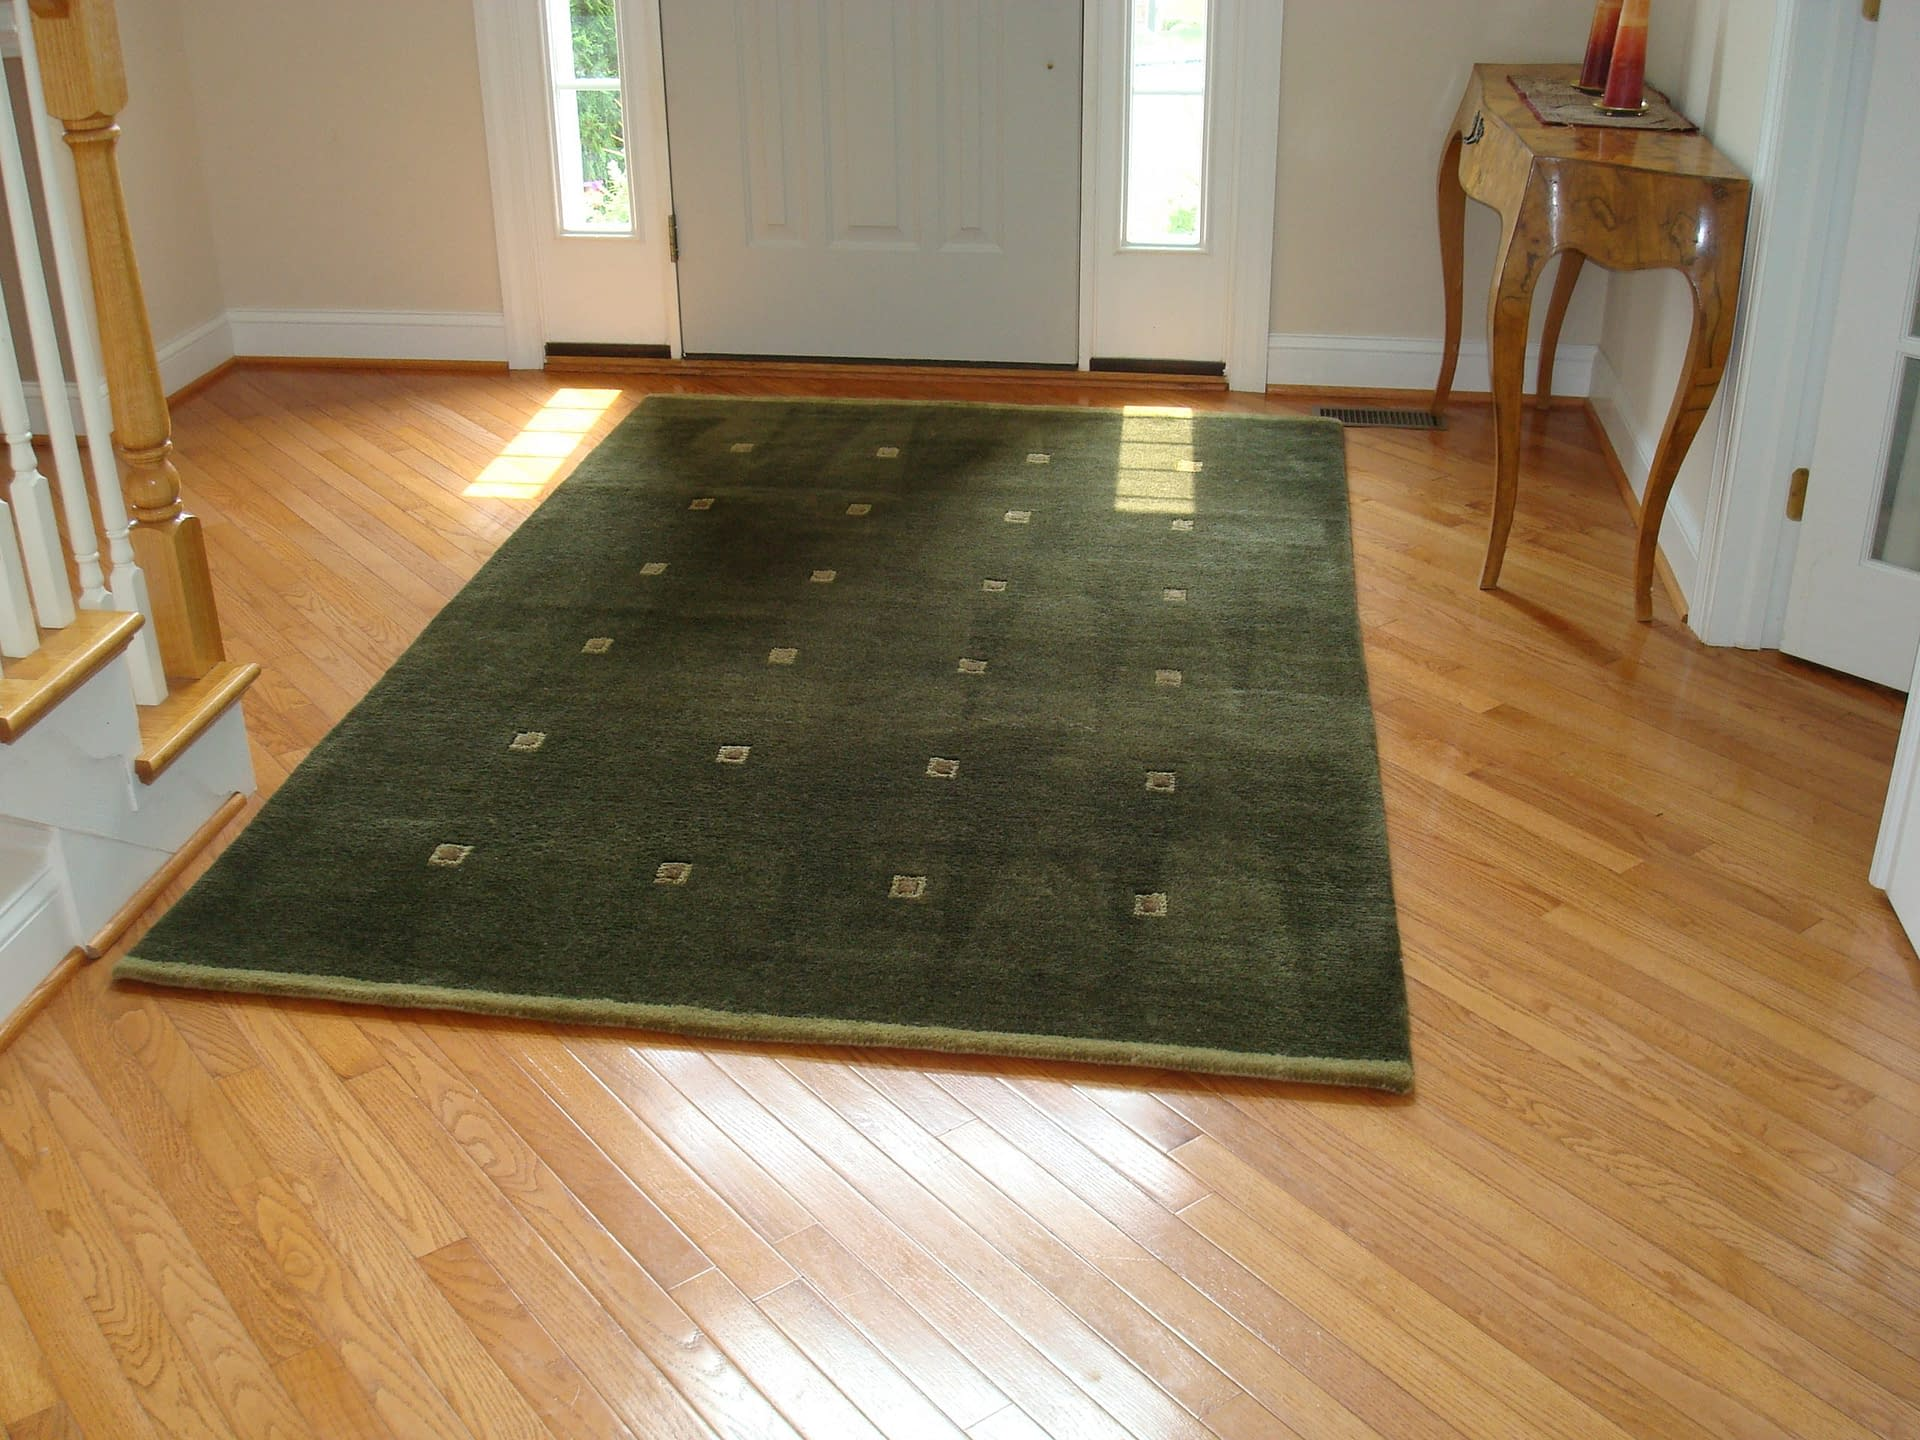 Rug cleaning in Newtown, PA